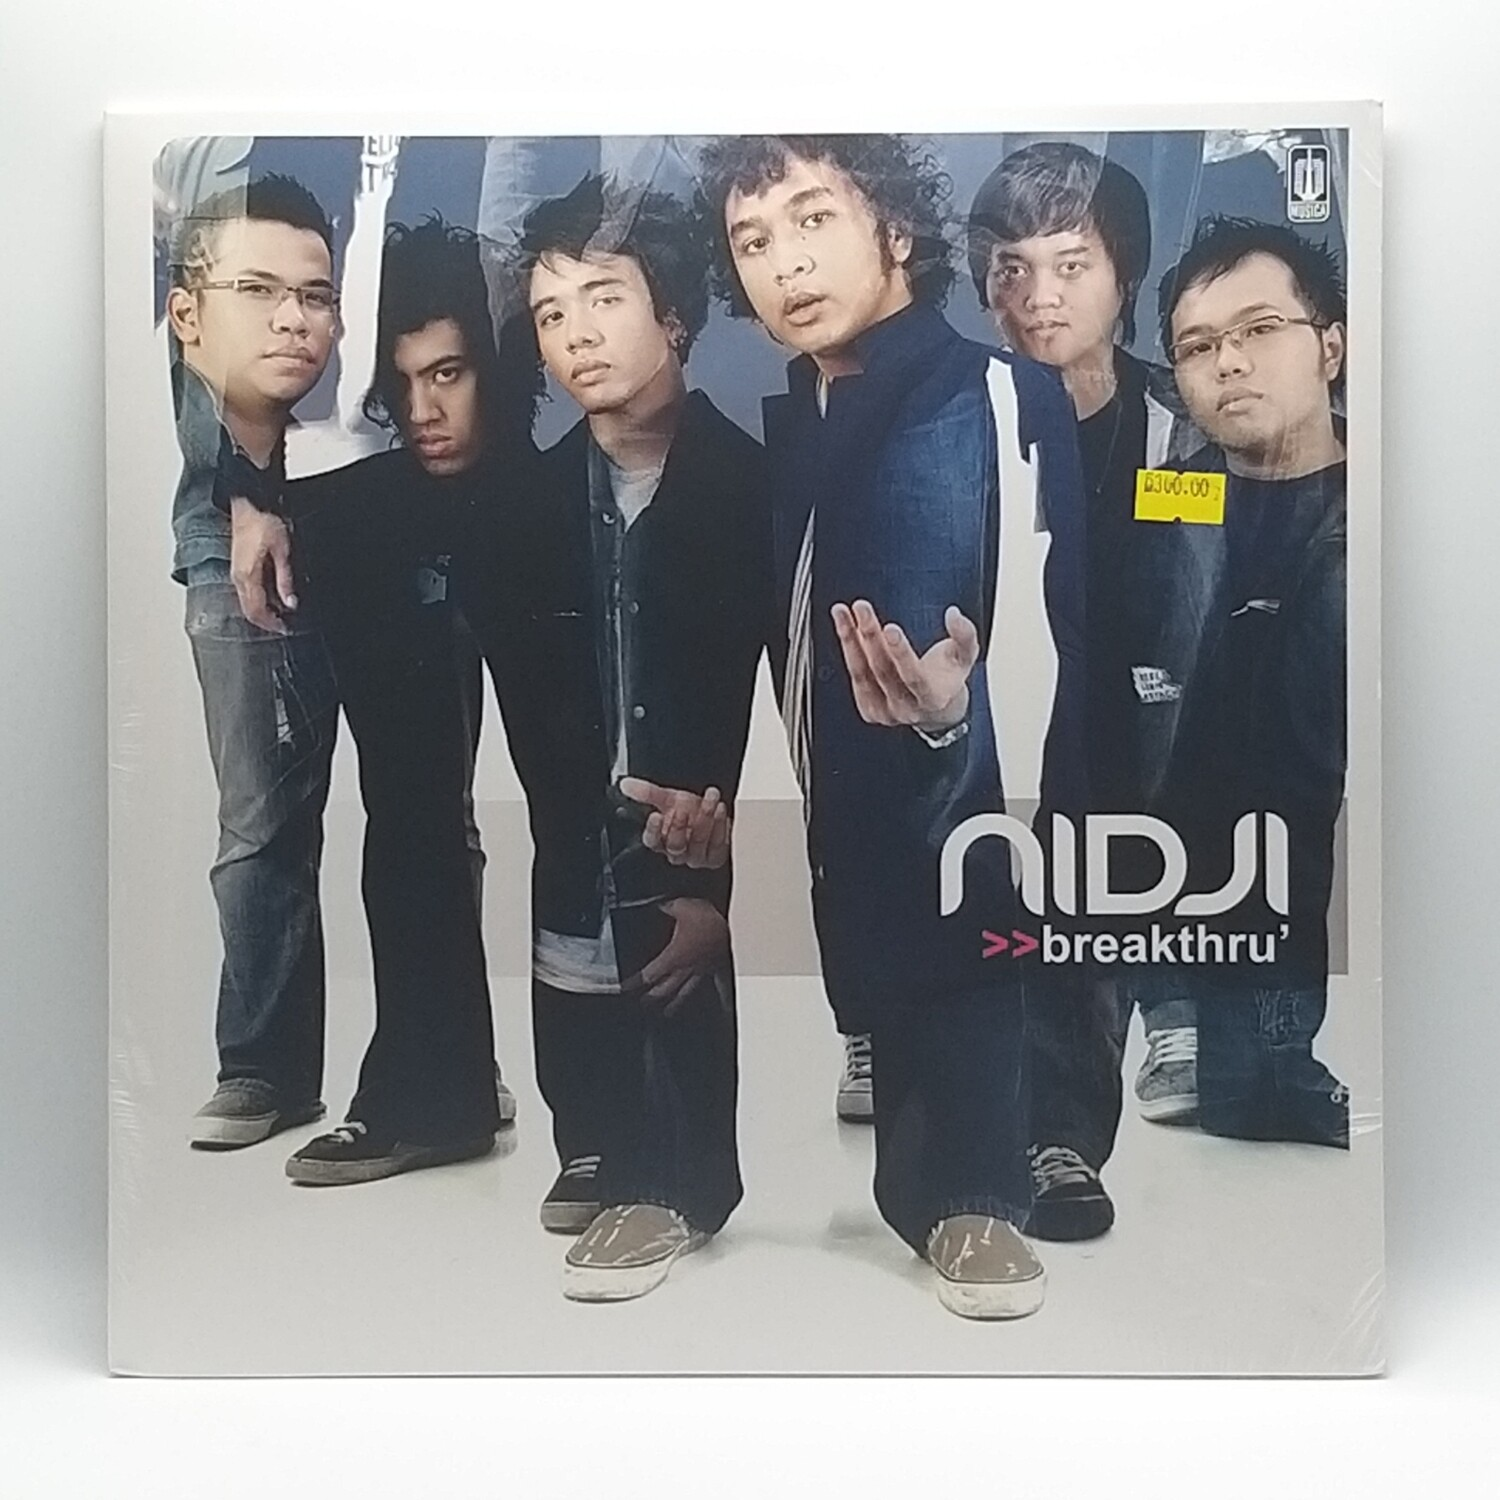 NIDJI -BREAKTHRU- LP